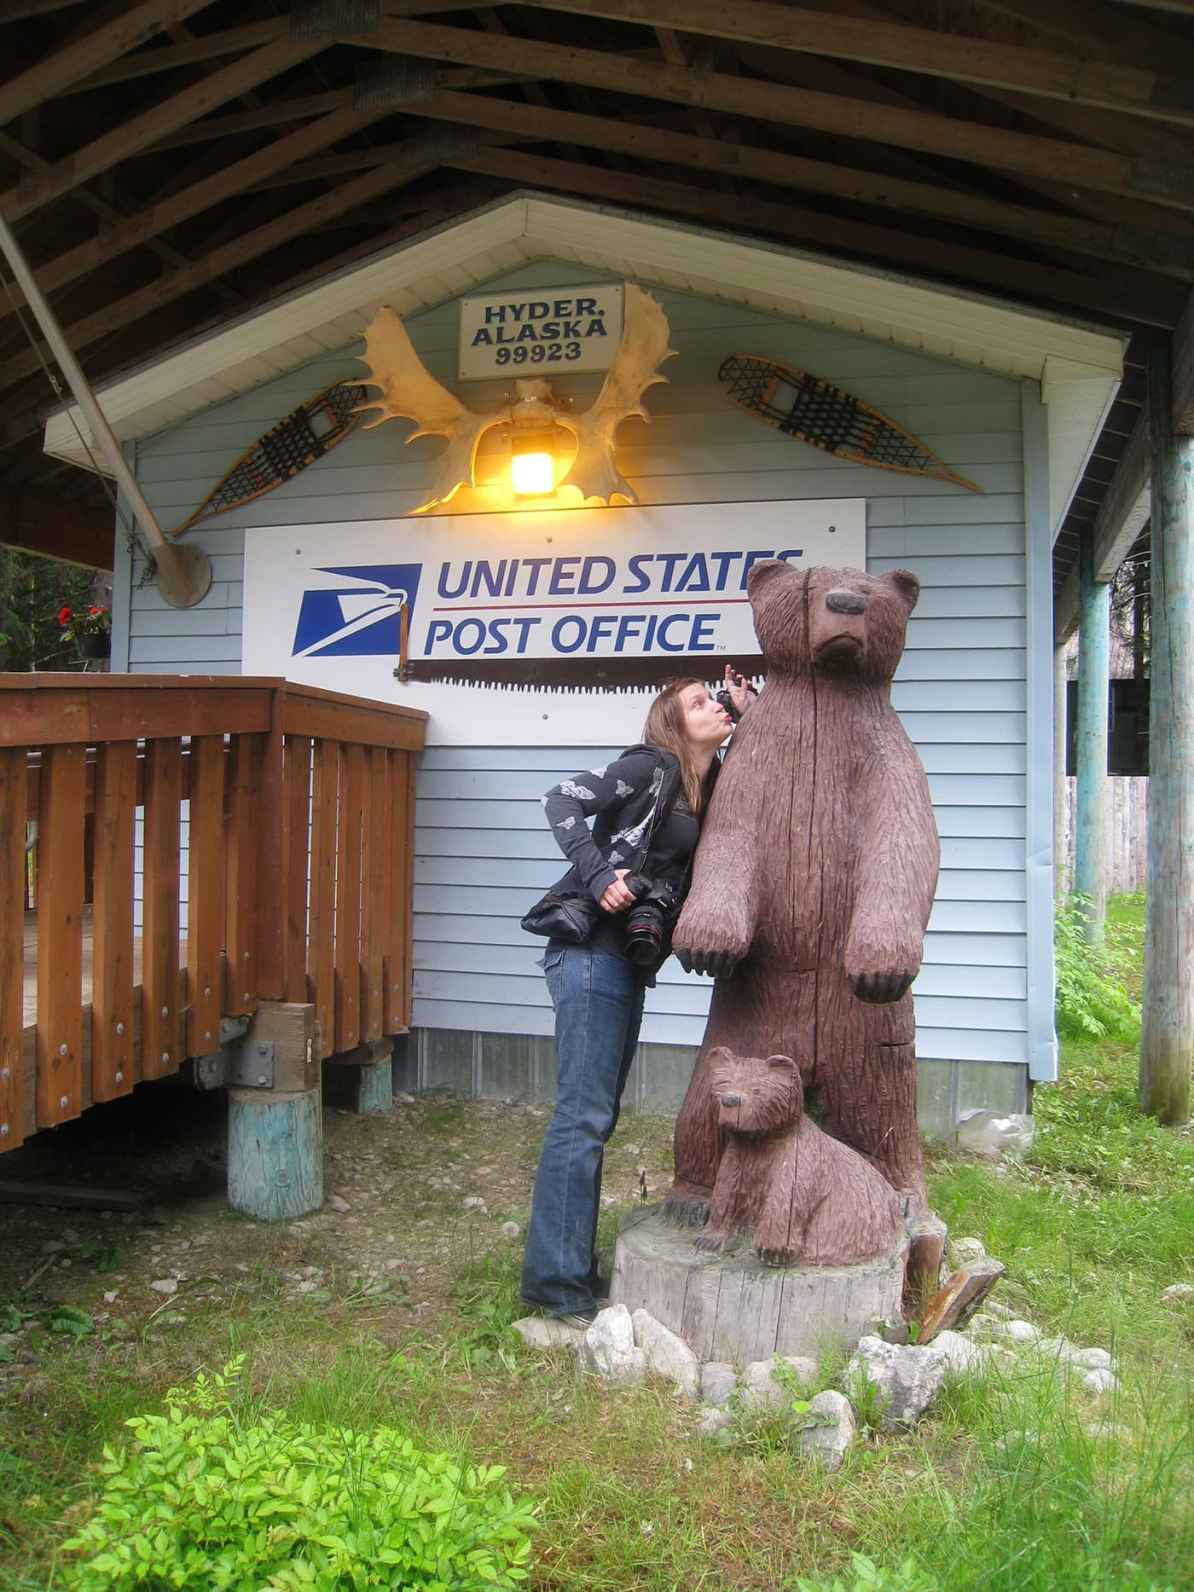 Val kisses the wooden carved bear and cub at the Hyder, Alaska Post Office.